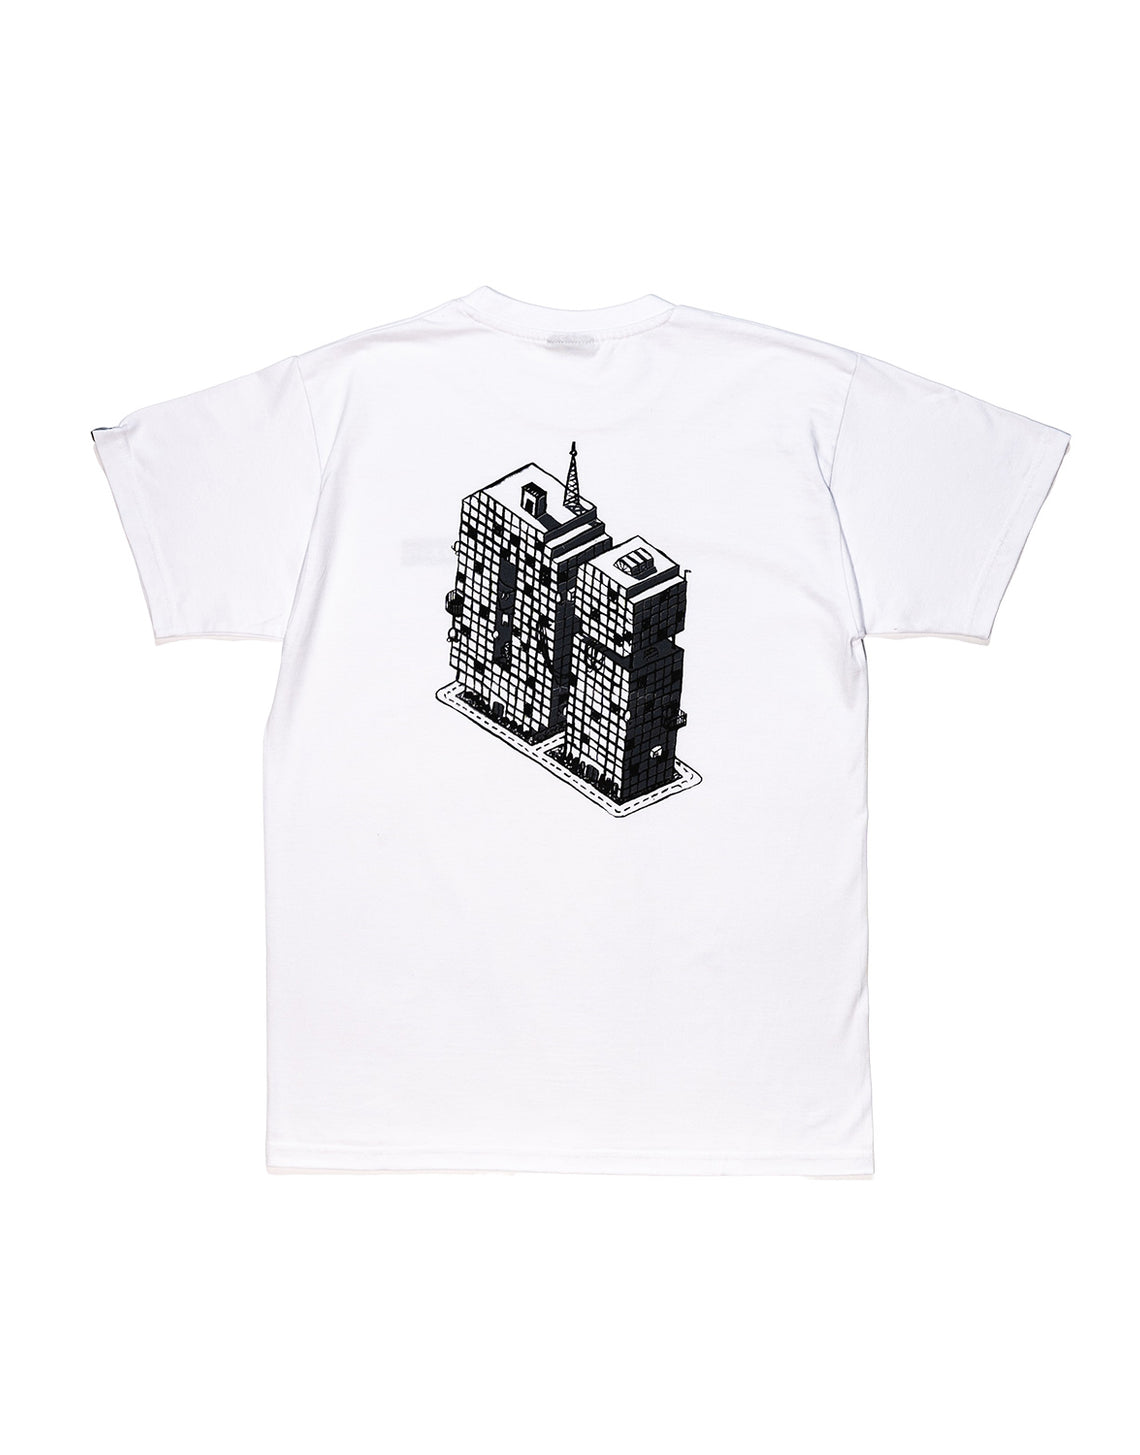 Oi Building T-Shirt - OutsideIn